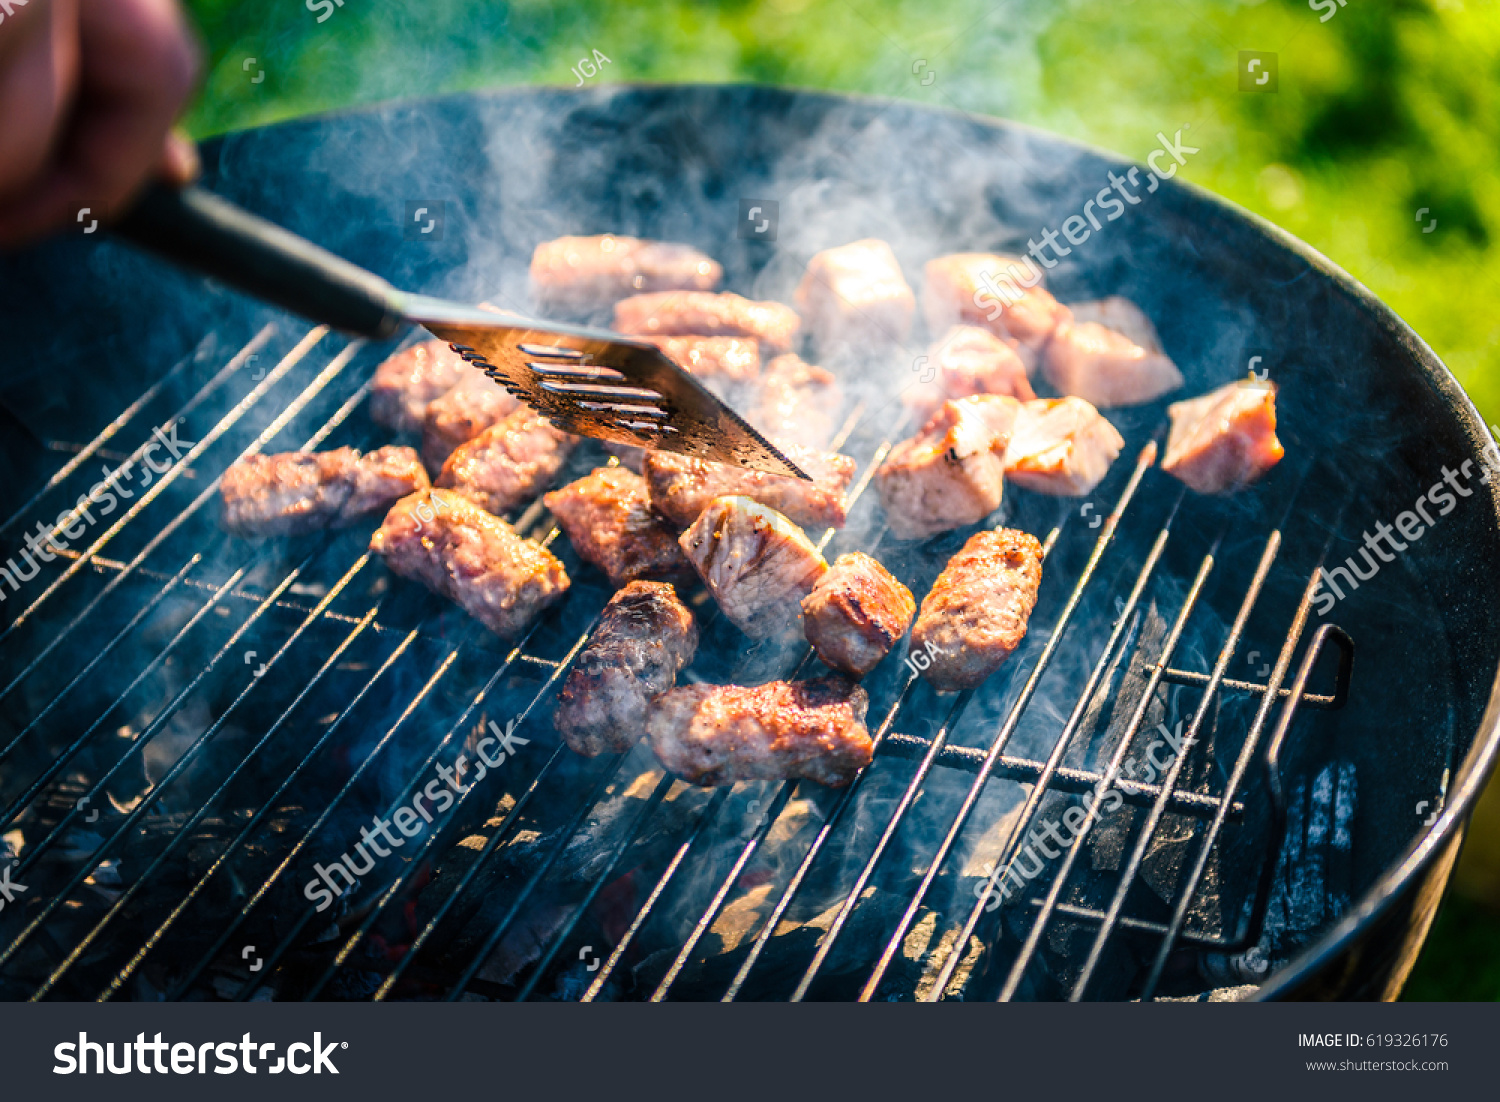 grilling delicious variety meat on barbecue stock photo 619326176